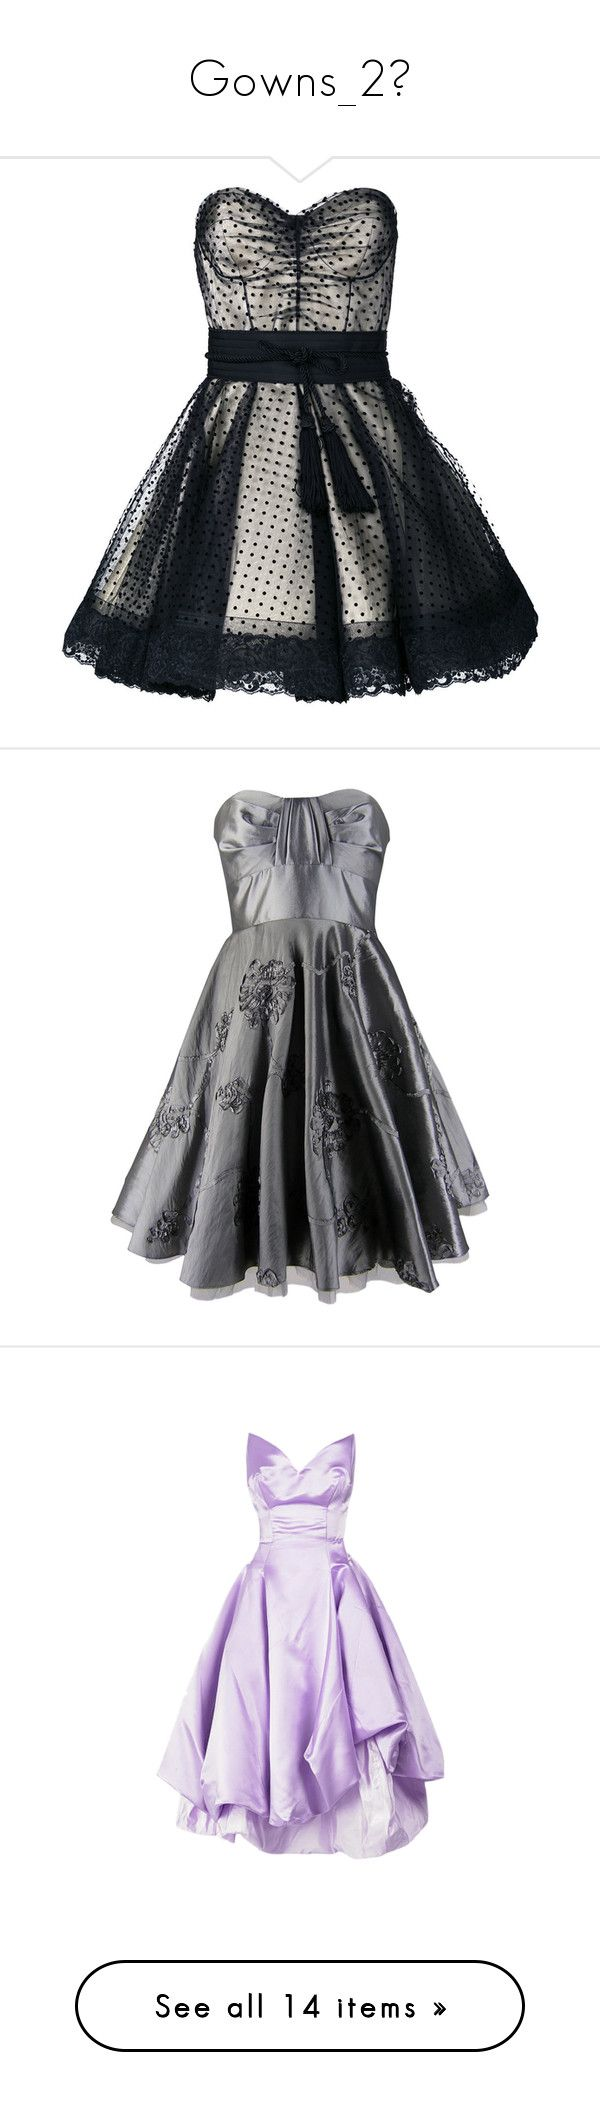 """""""Gowns_2♥"""" by krgood7 ❤ liked on Polyvore featuring dresses, black, short lace dress, lace dress, flared skirt, waist belt, short skater skirt, short dresses, evening cocktail dresses and short party dresses"""